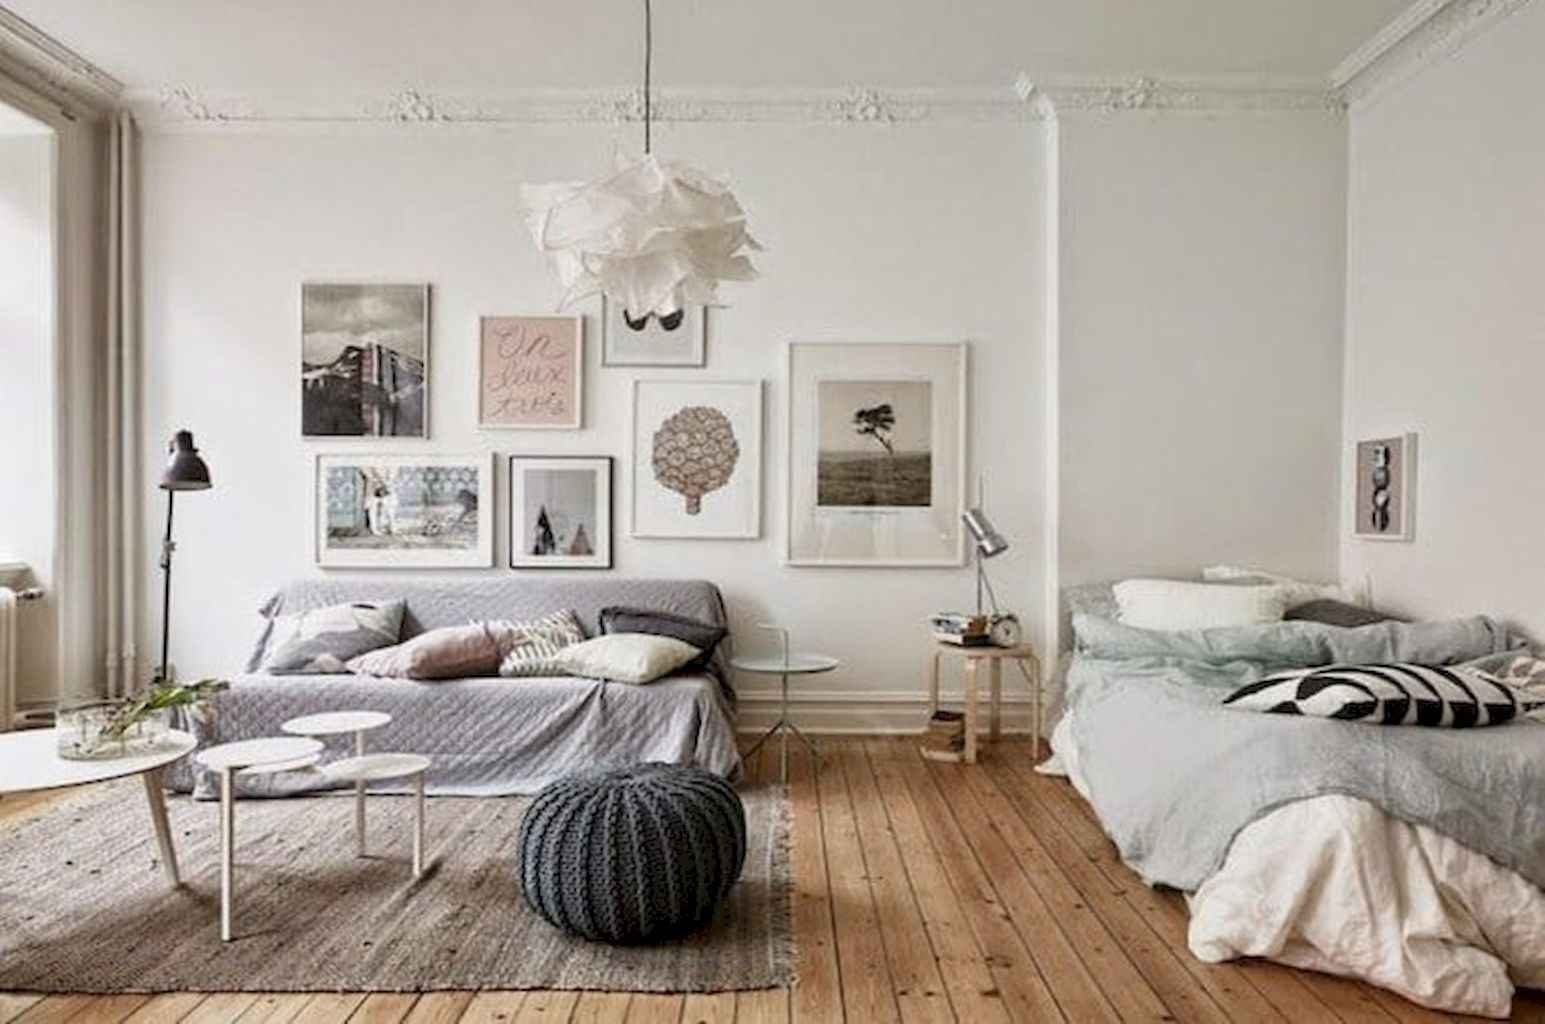 Small apartment studio decorating ideas on a budget (27)